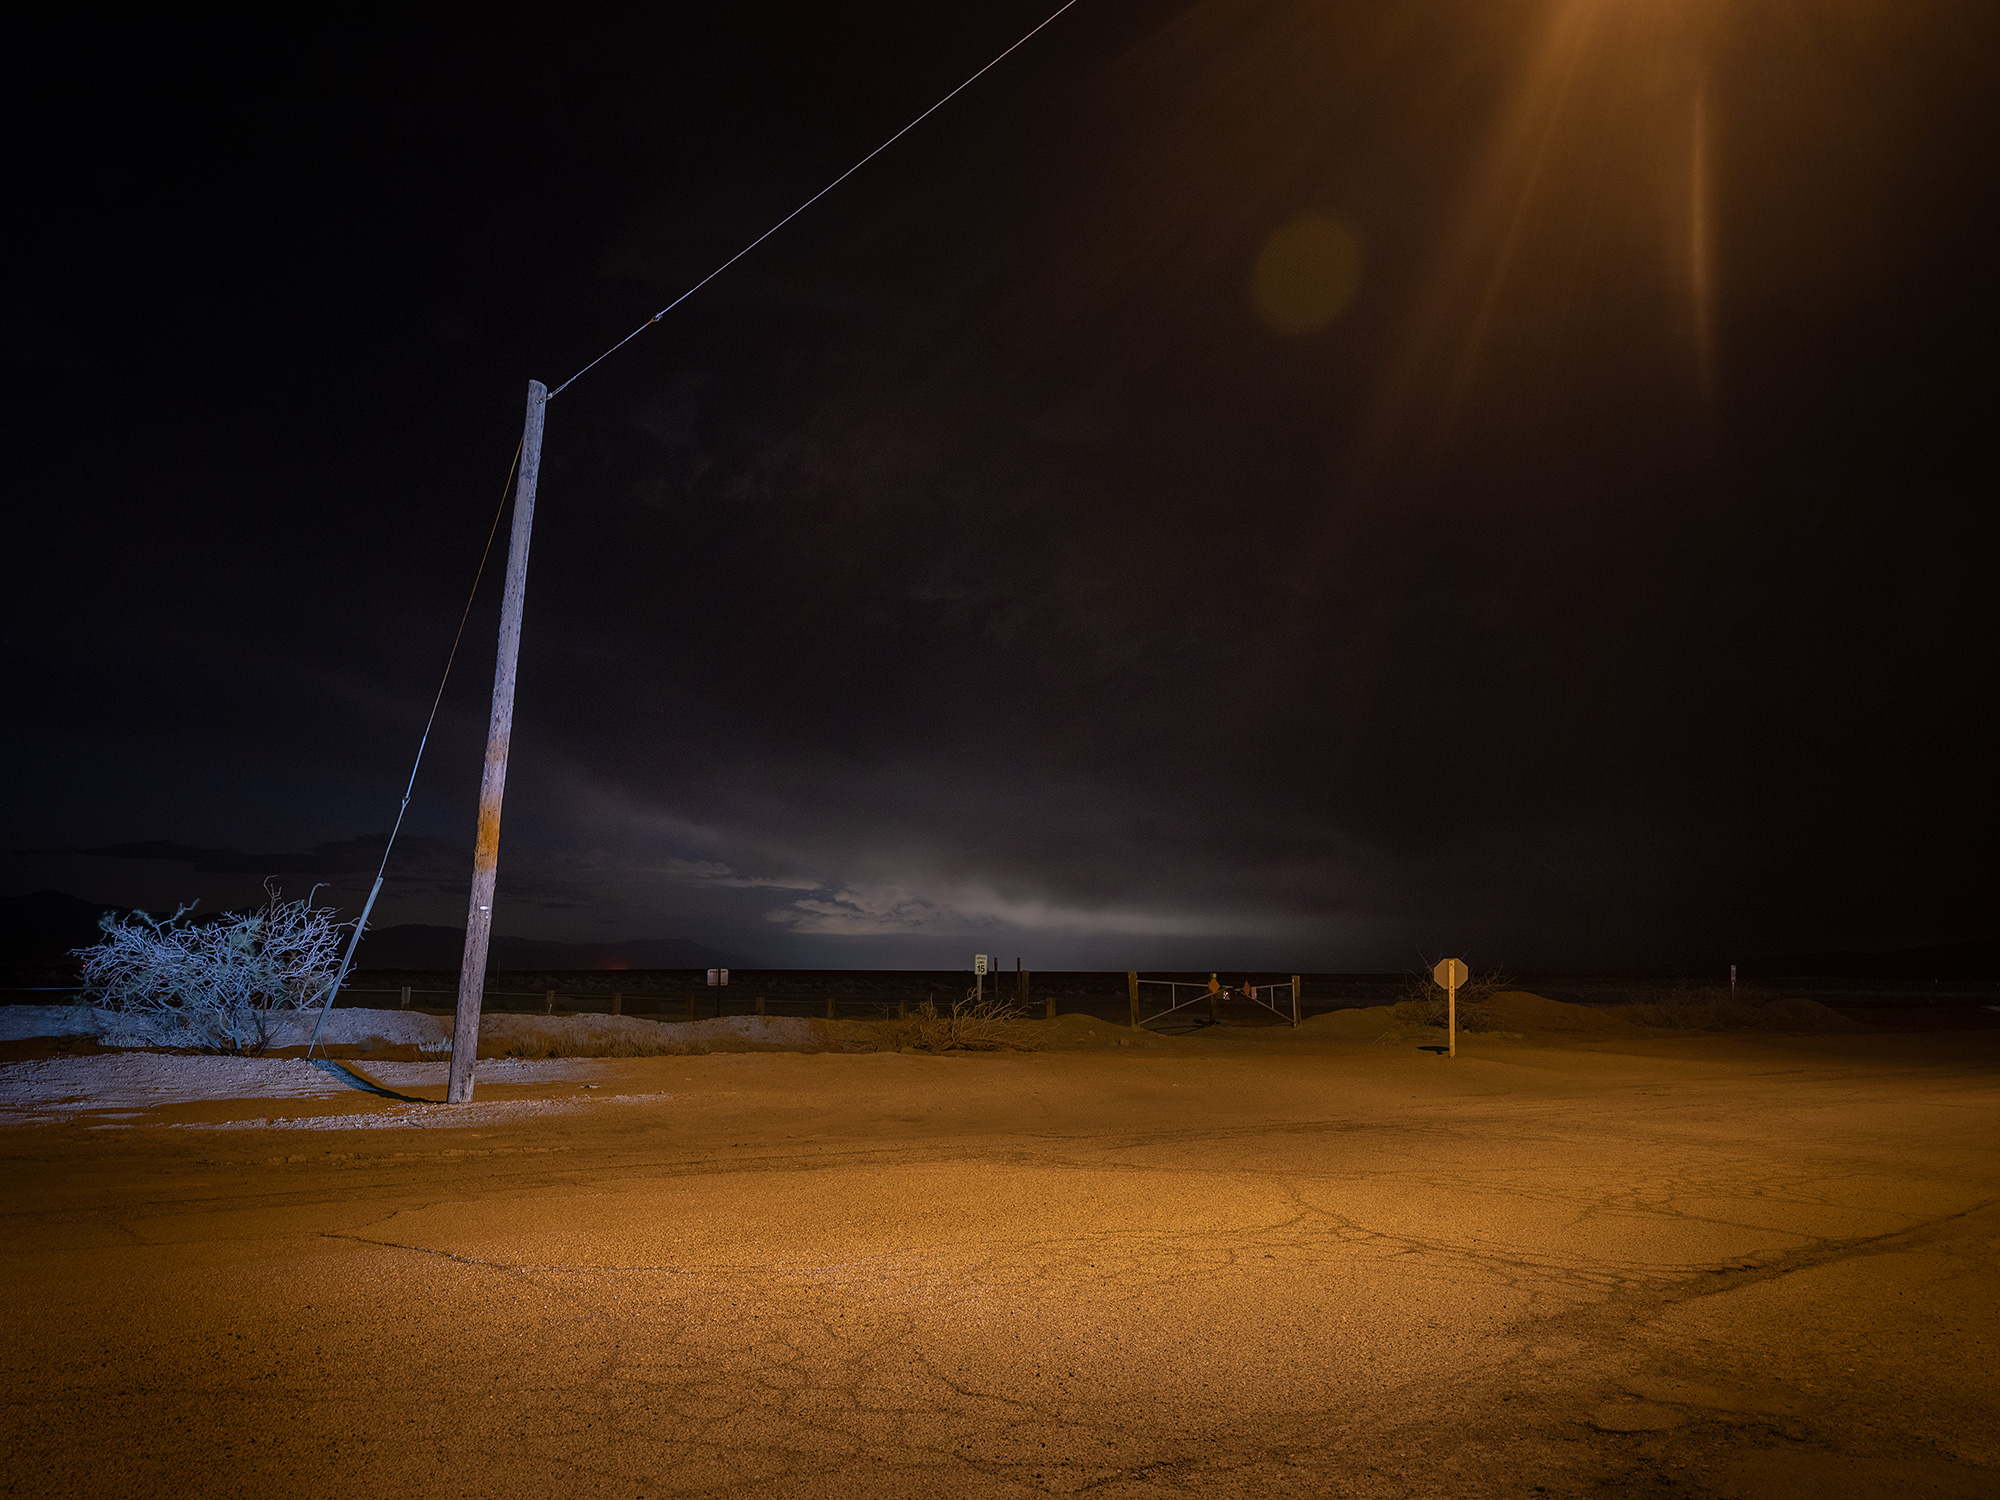 Landscape at night with sand storm in background.